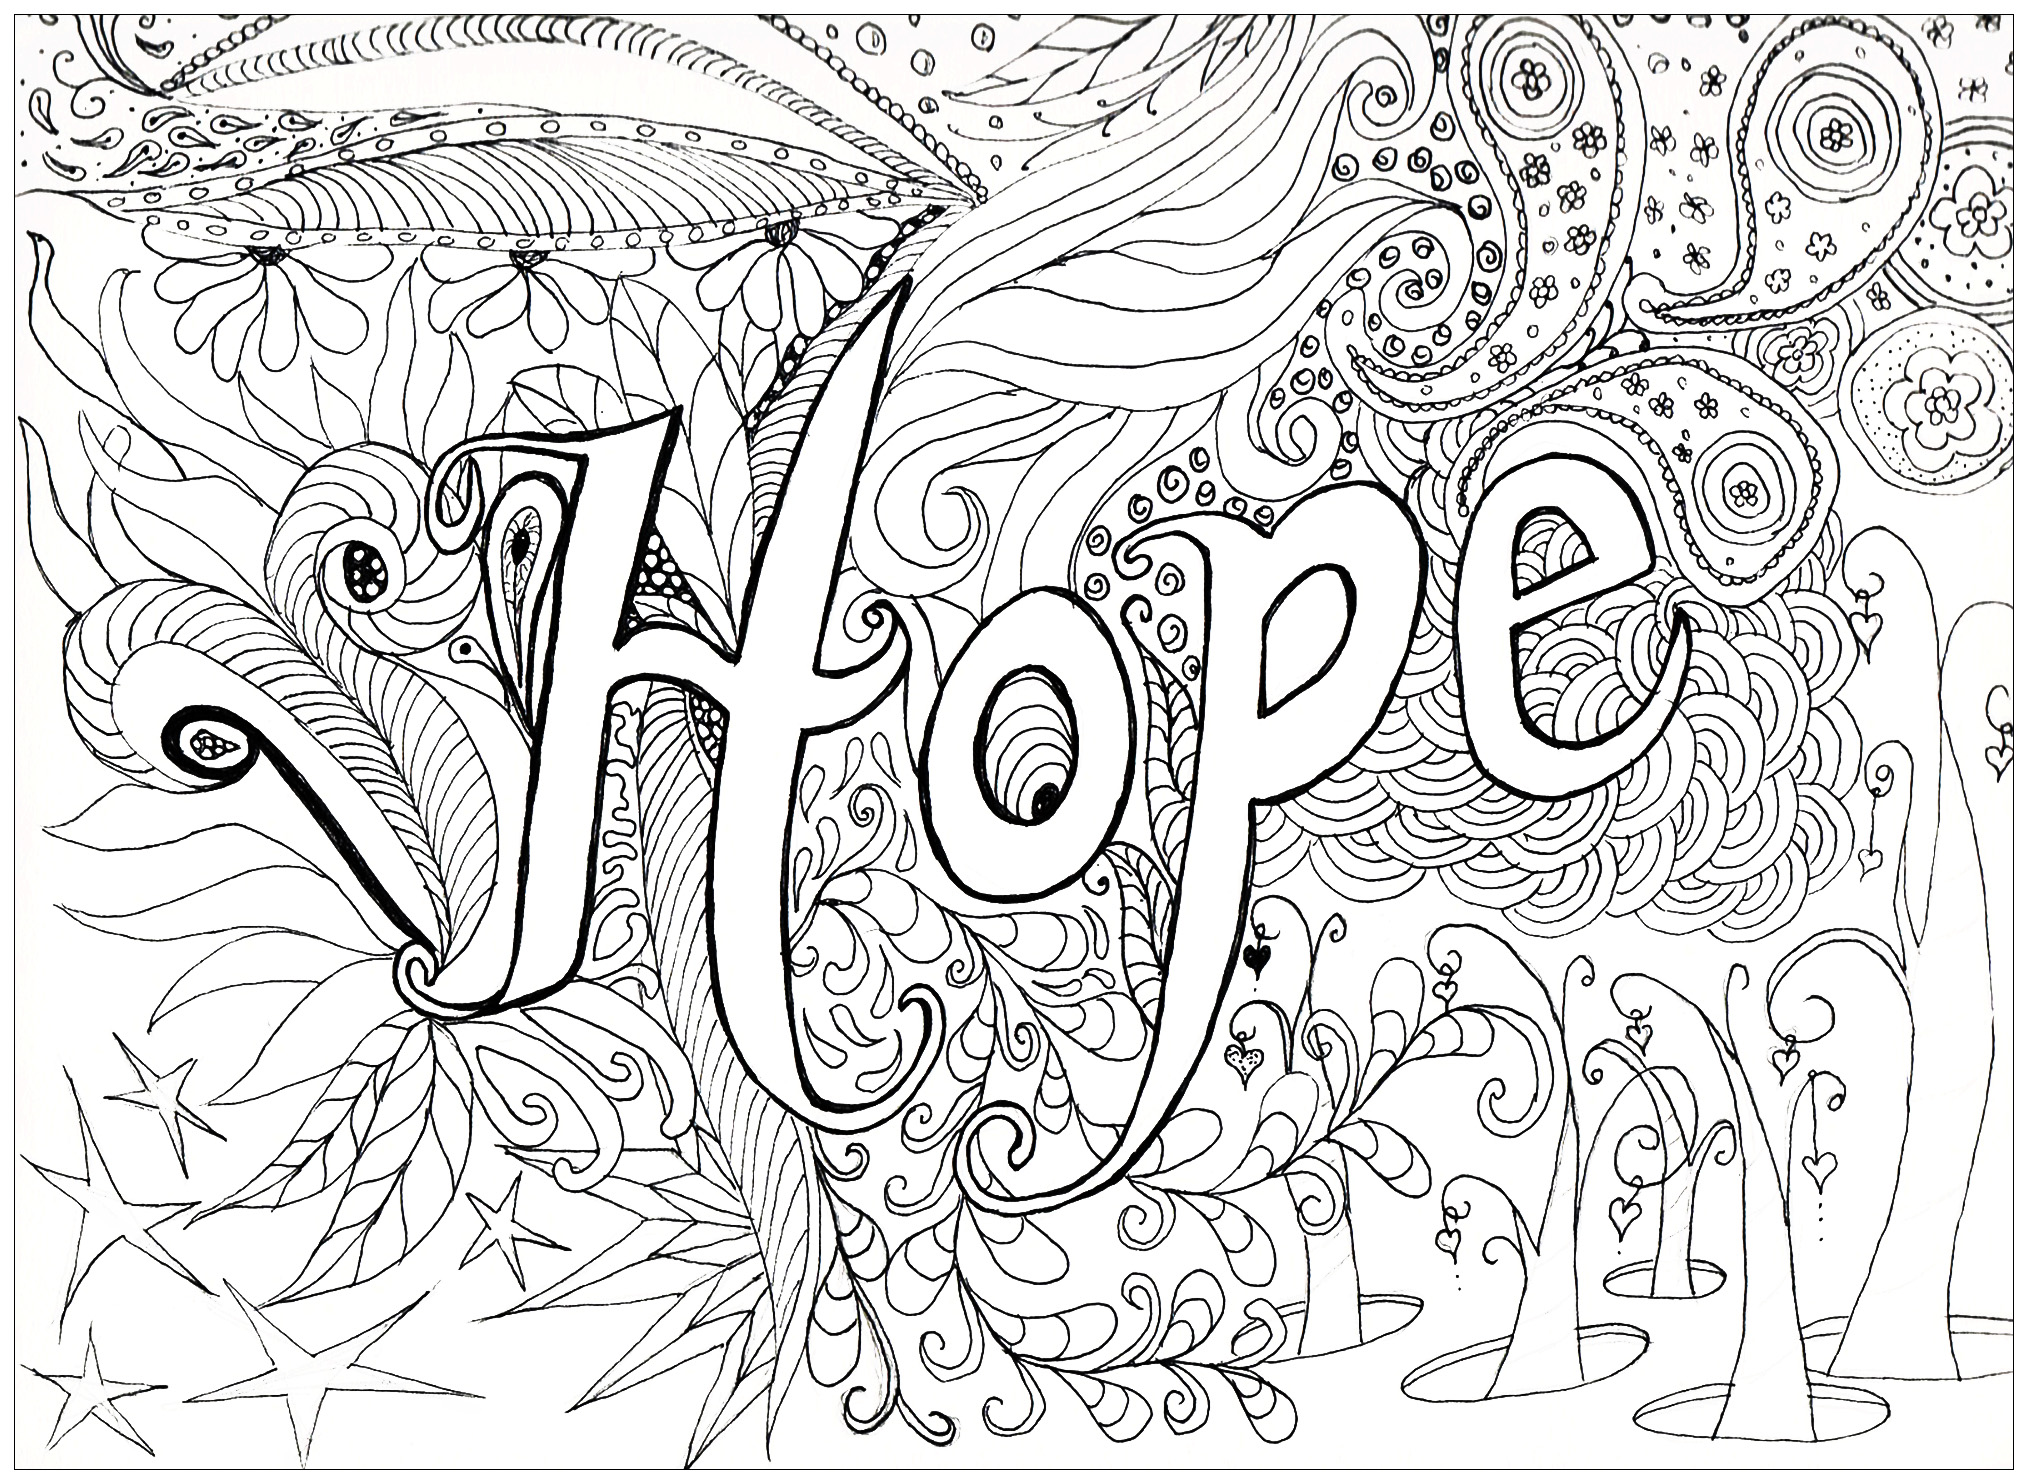 print - Print Coloring Pages For Adults